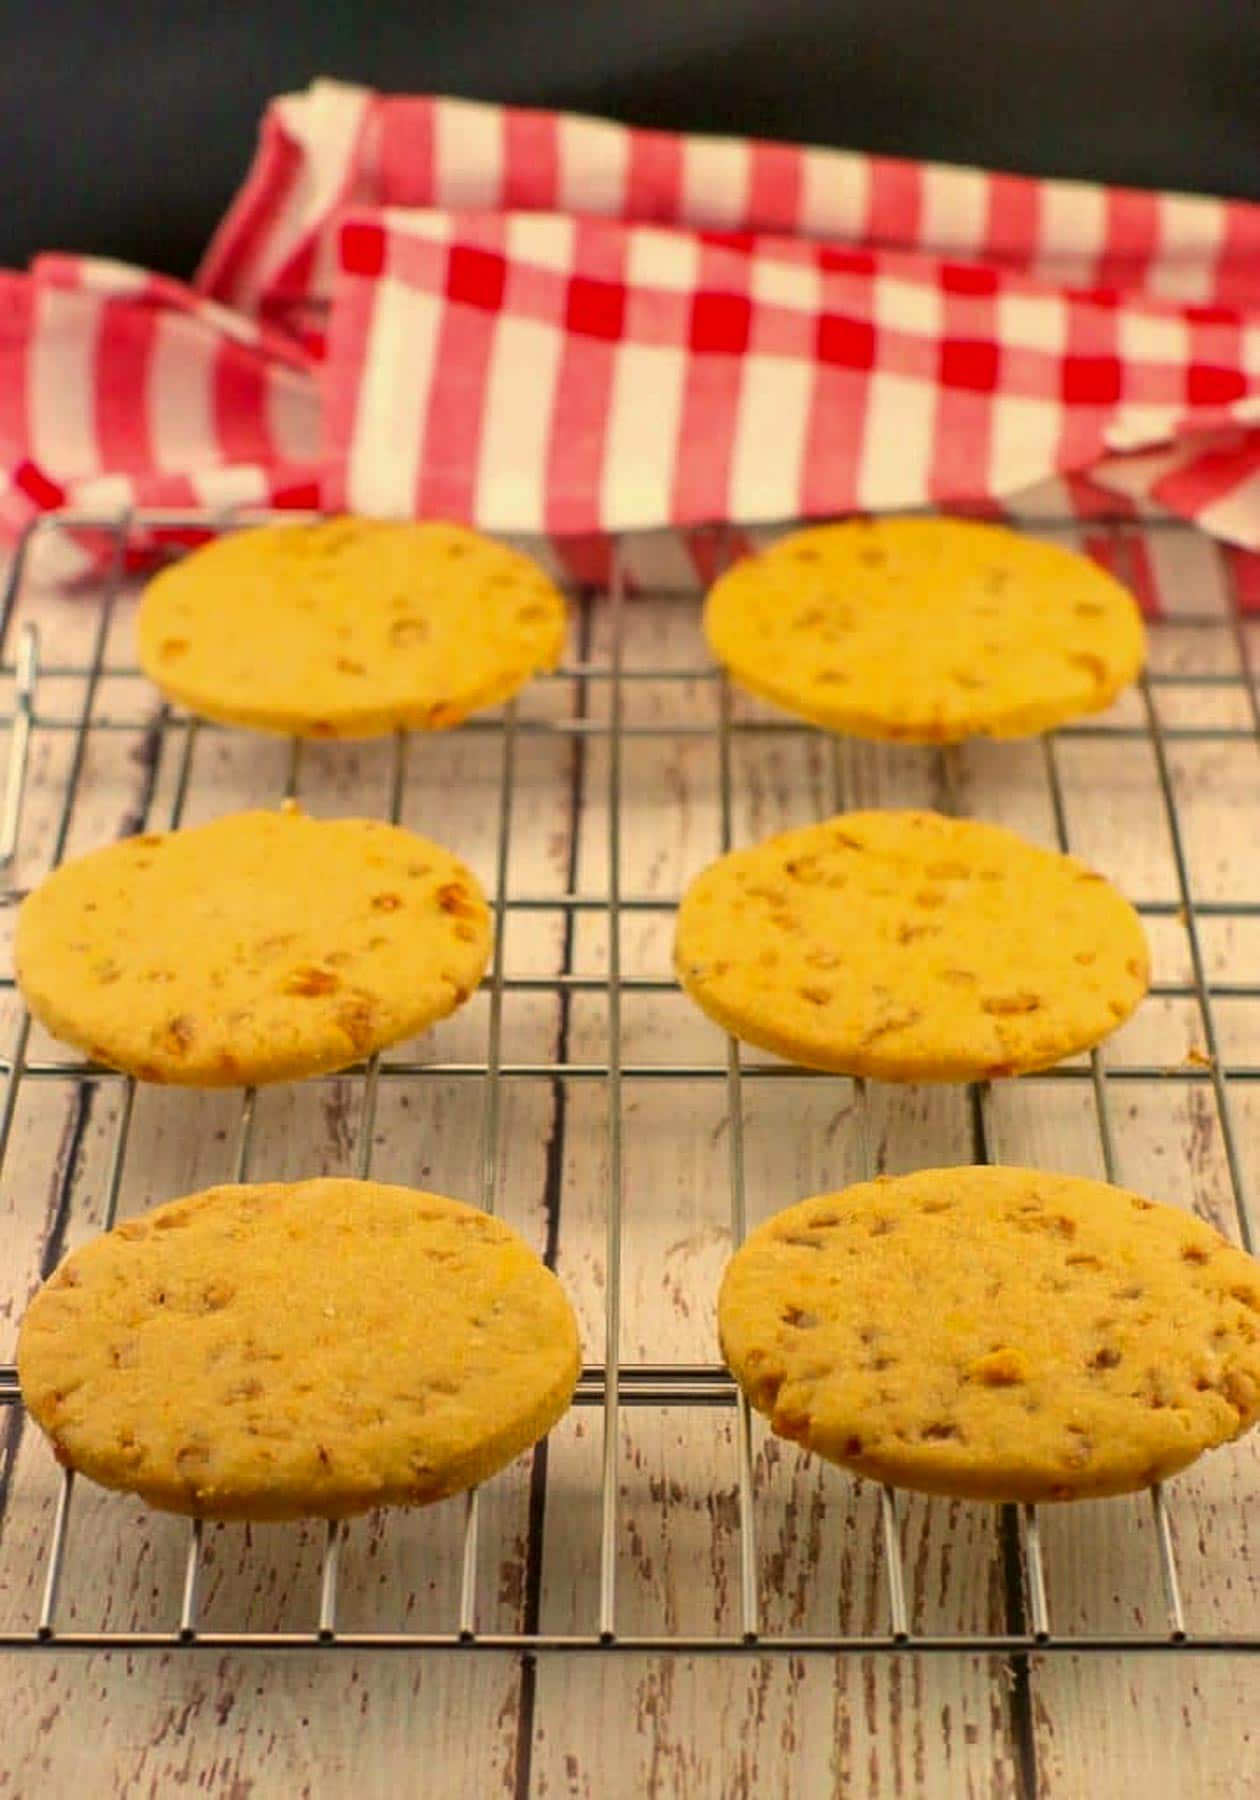 butterscotch toffee cookies on a wire cooling rack, with checkered red and white tablecloth